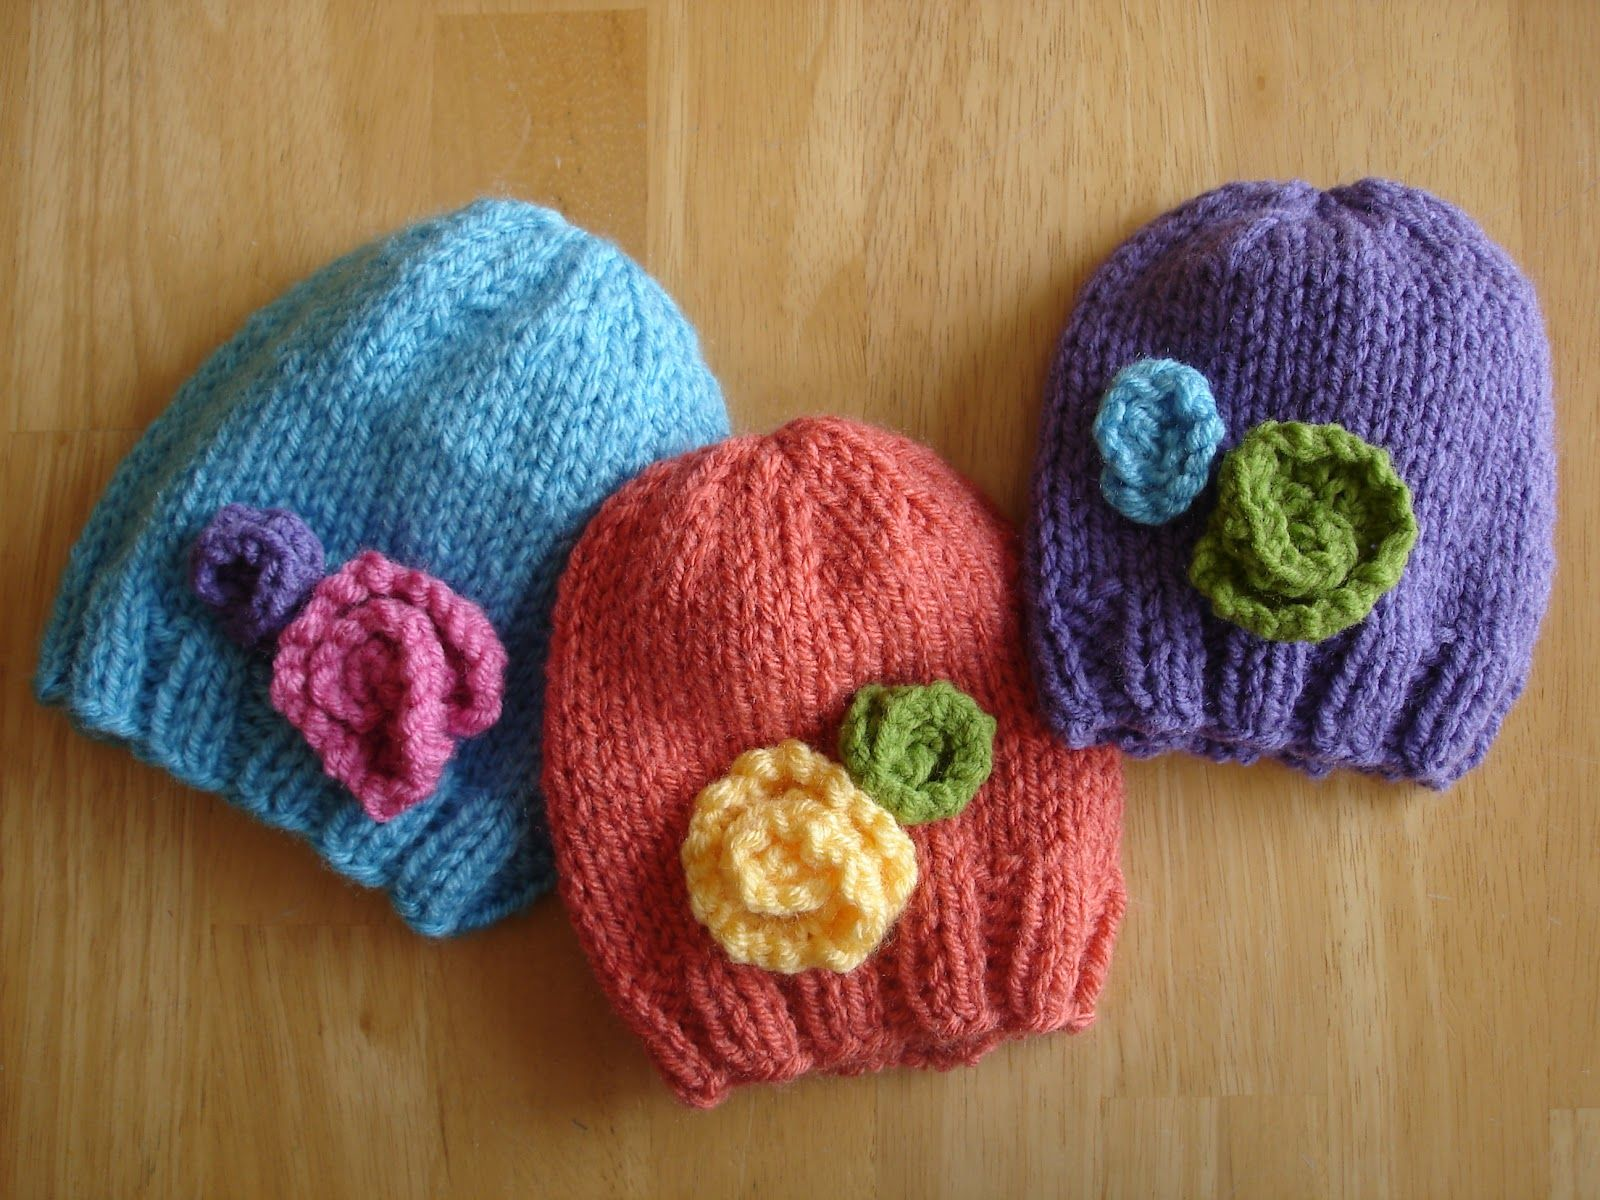 Fiber Flux...Adventures in Stitching: Free Knitting Pattern! Baby In Bloom Hats